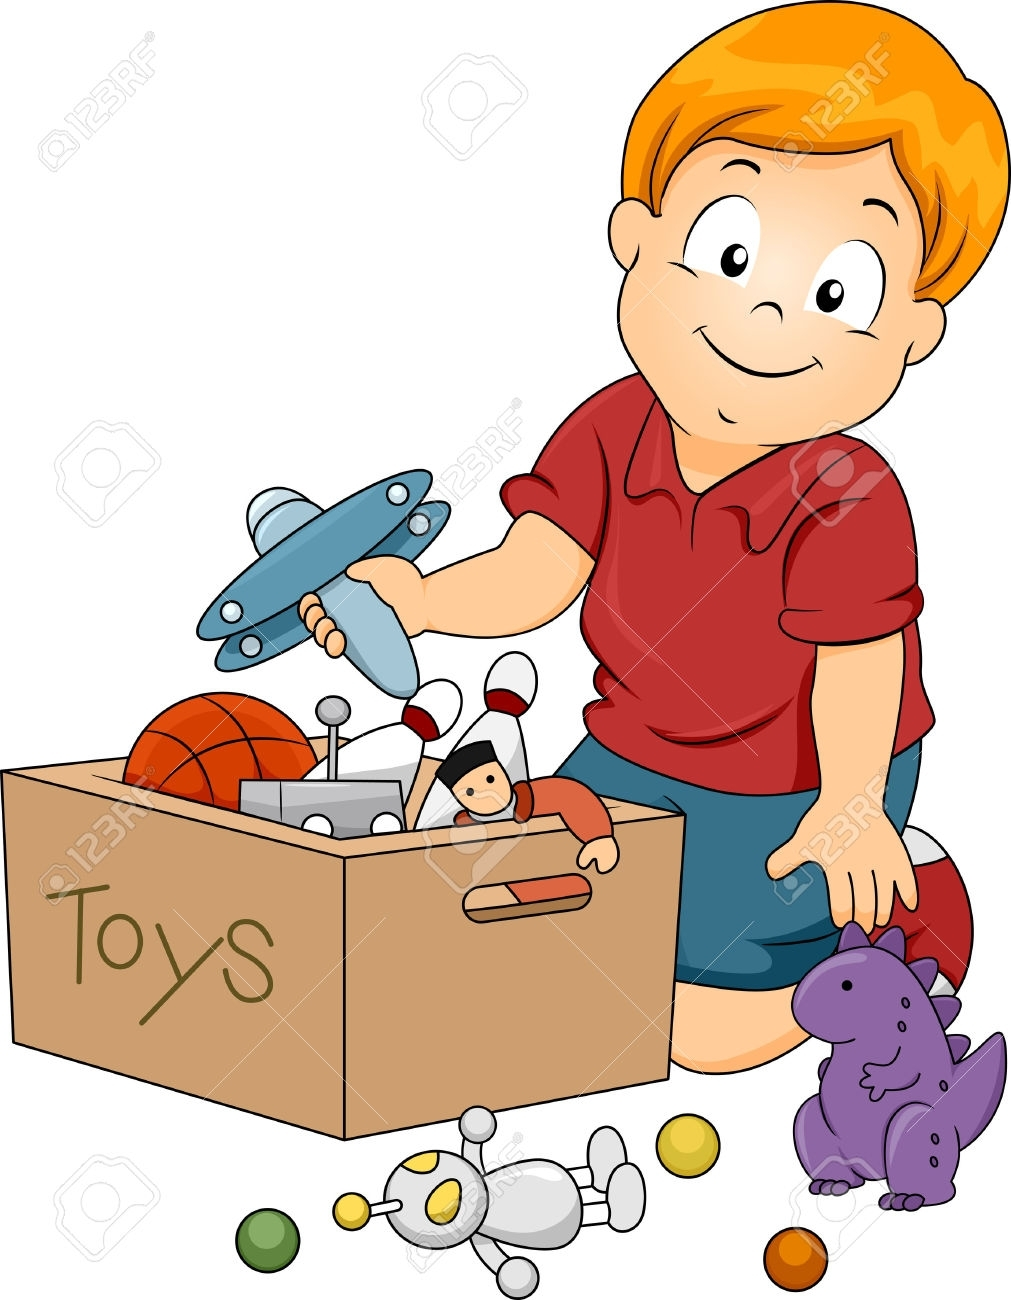 Clean up clipart Best of Kids Cleaning Up Toys Clipart Free Clip Art.